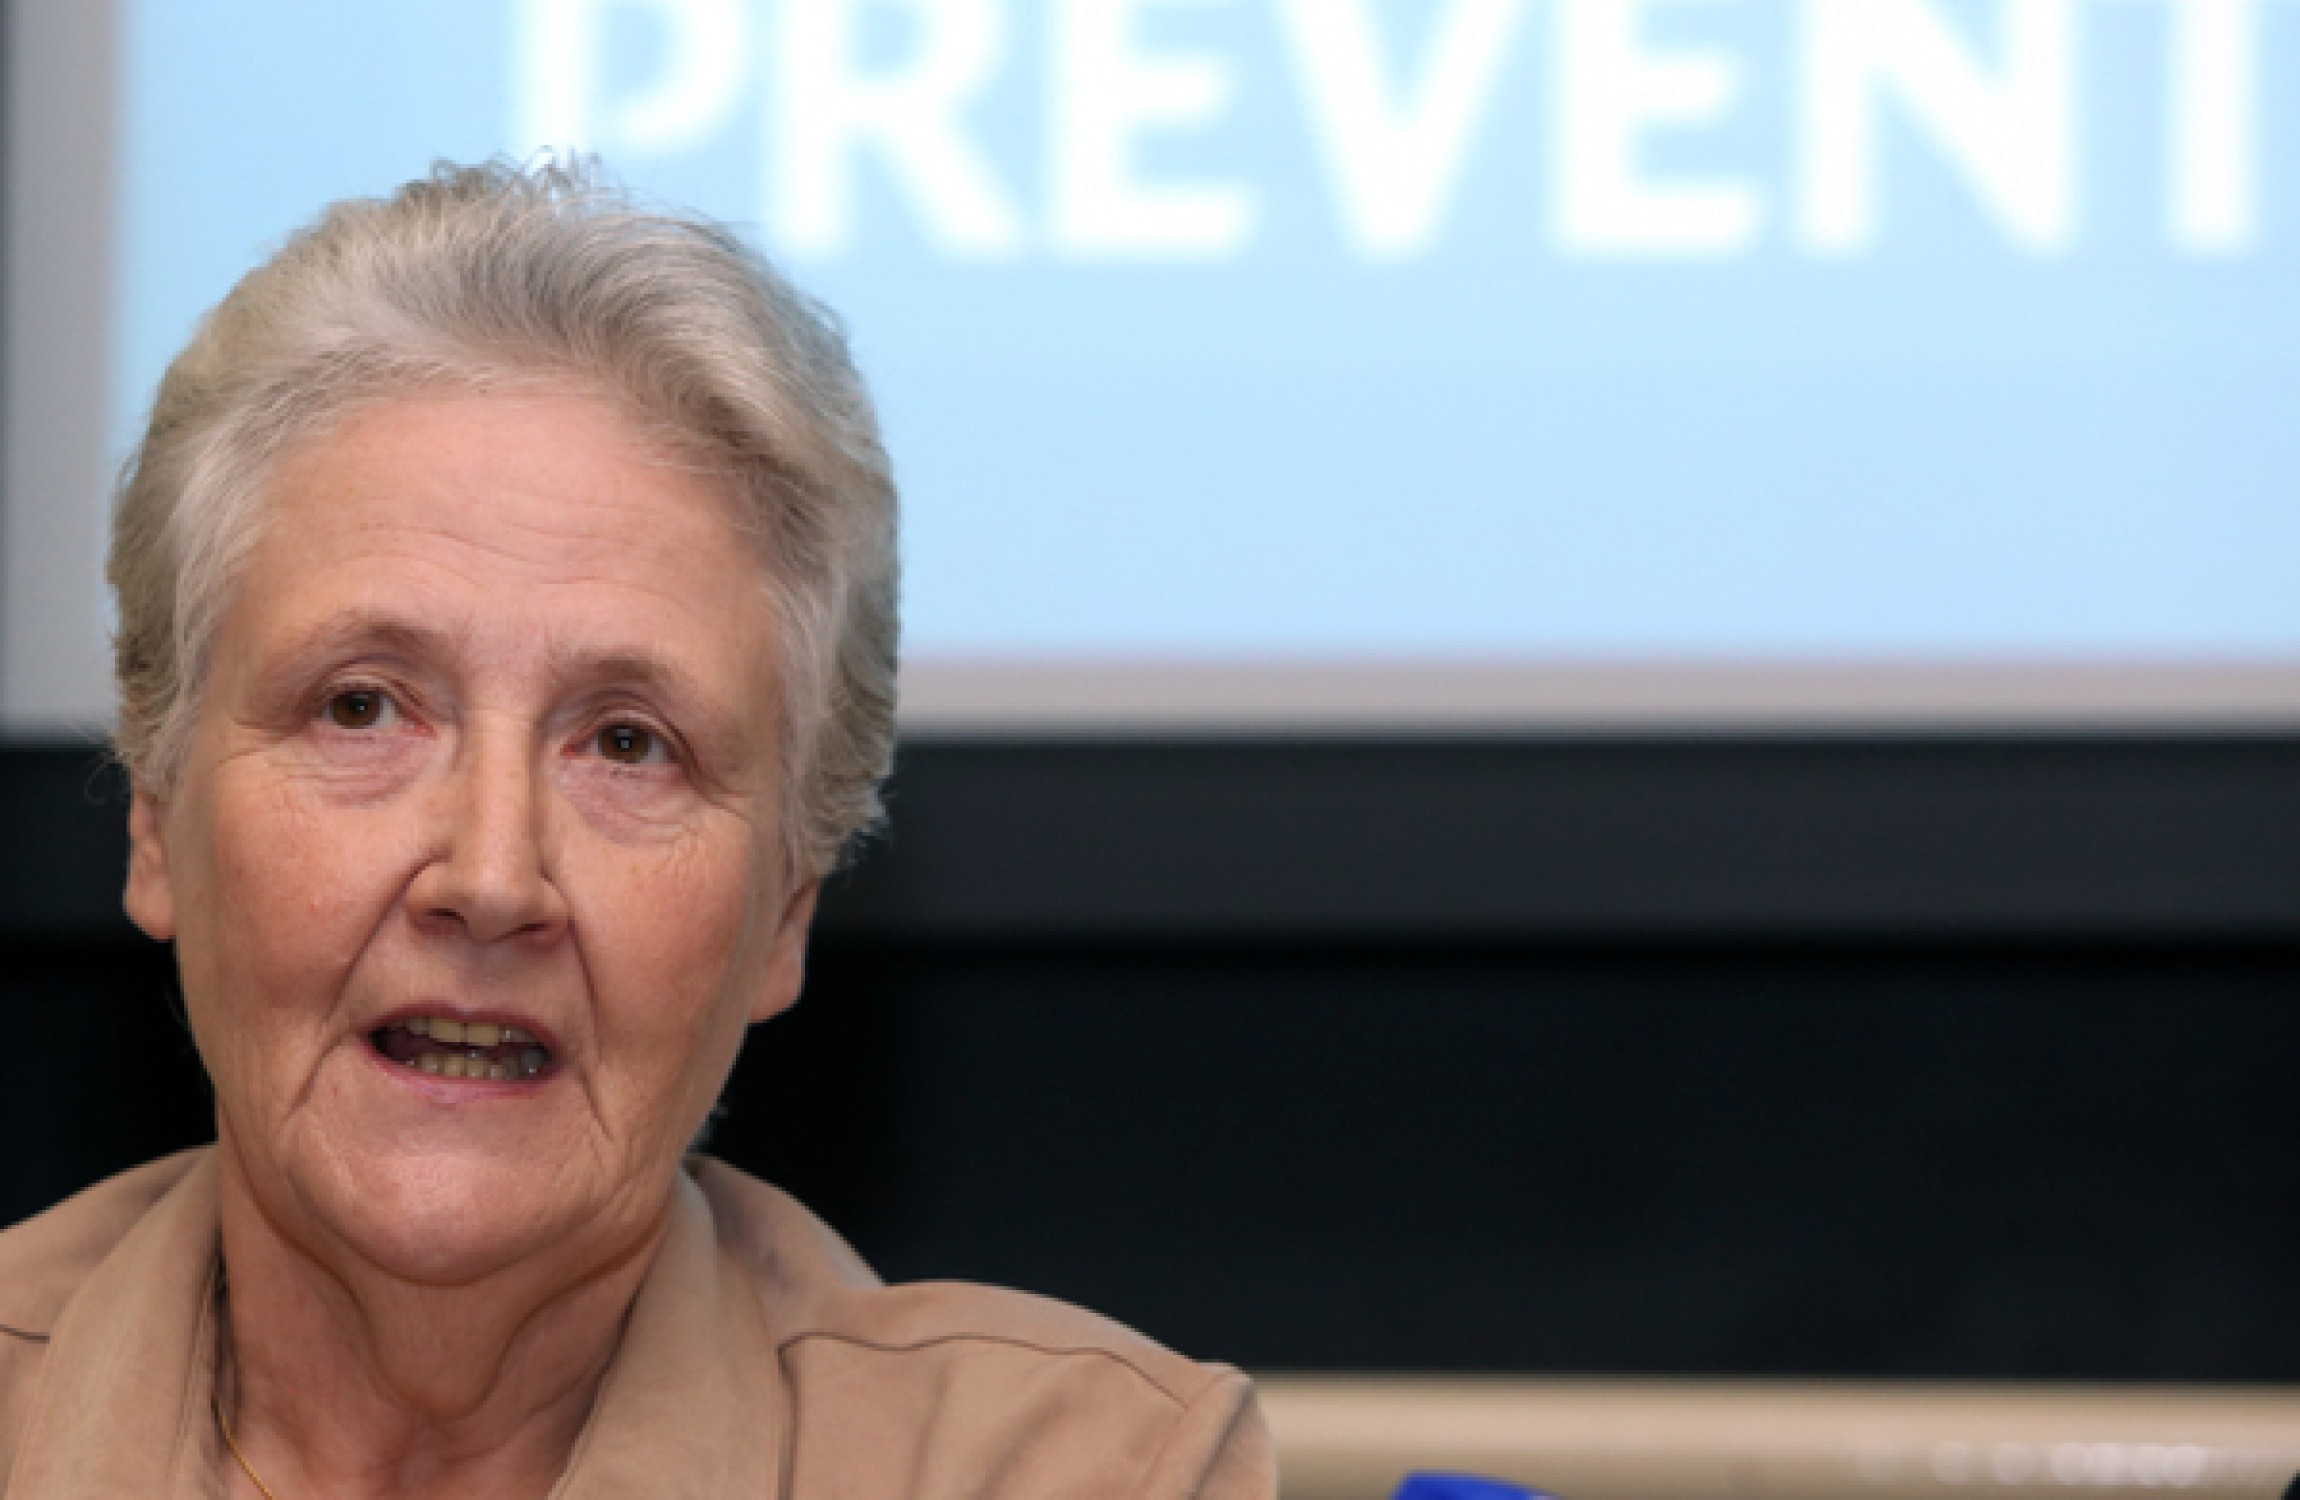 Irish abuse victim lashes out at Vatican bureaucracy as she quits panel